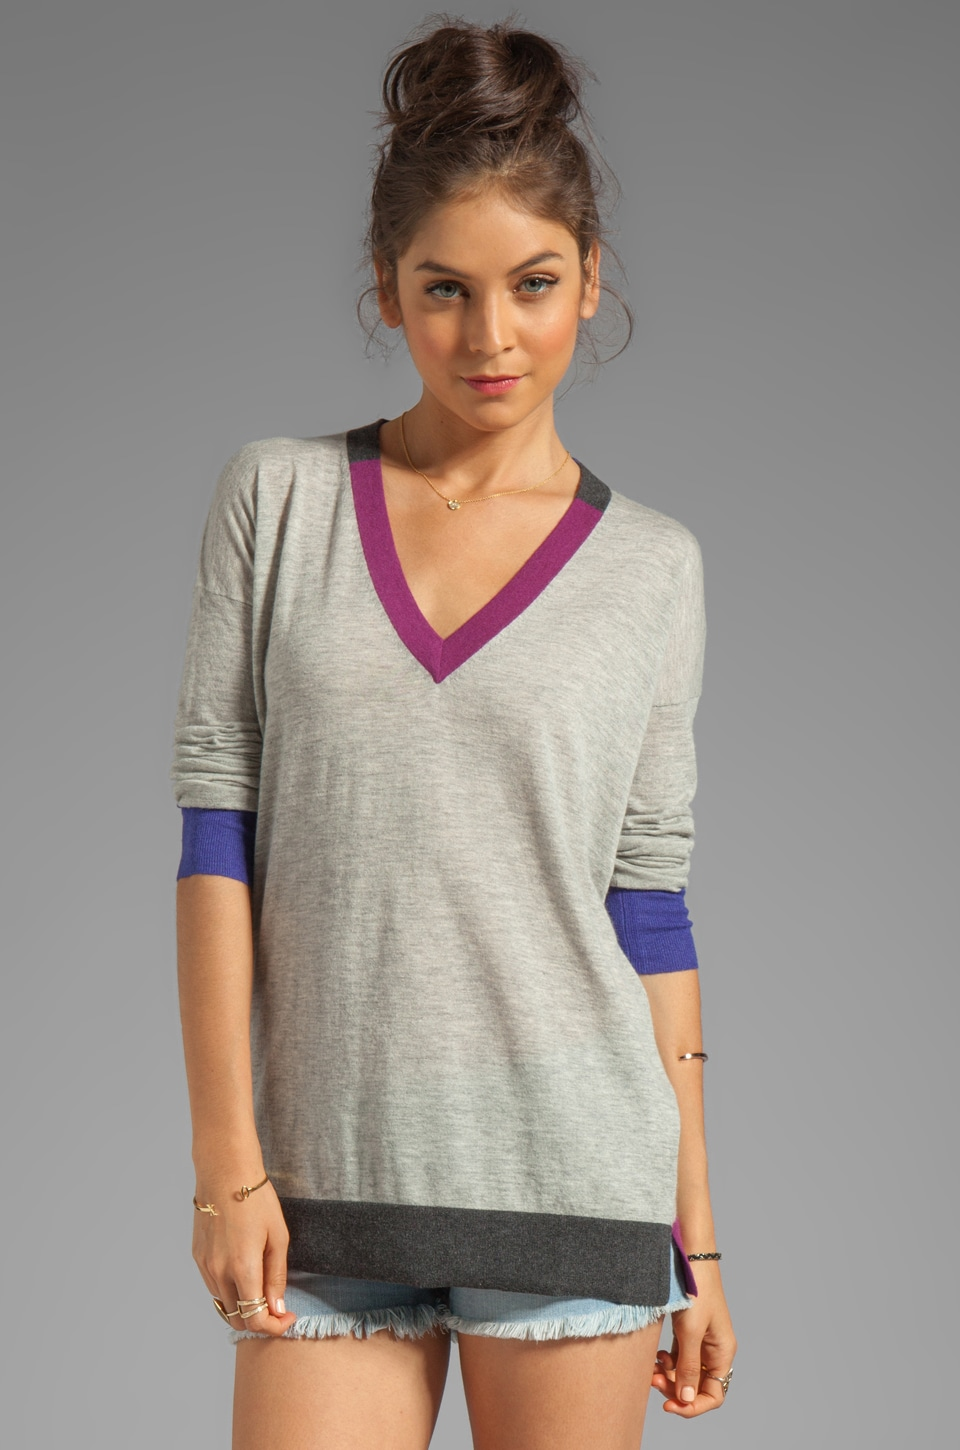 Autumn Cashmere Tissue Cashmere Color Block V Neck Tunic Sweater in Birch Brights Combo